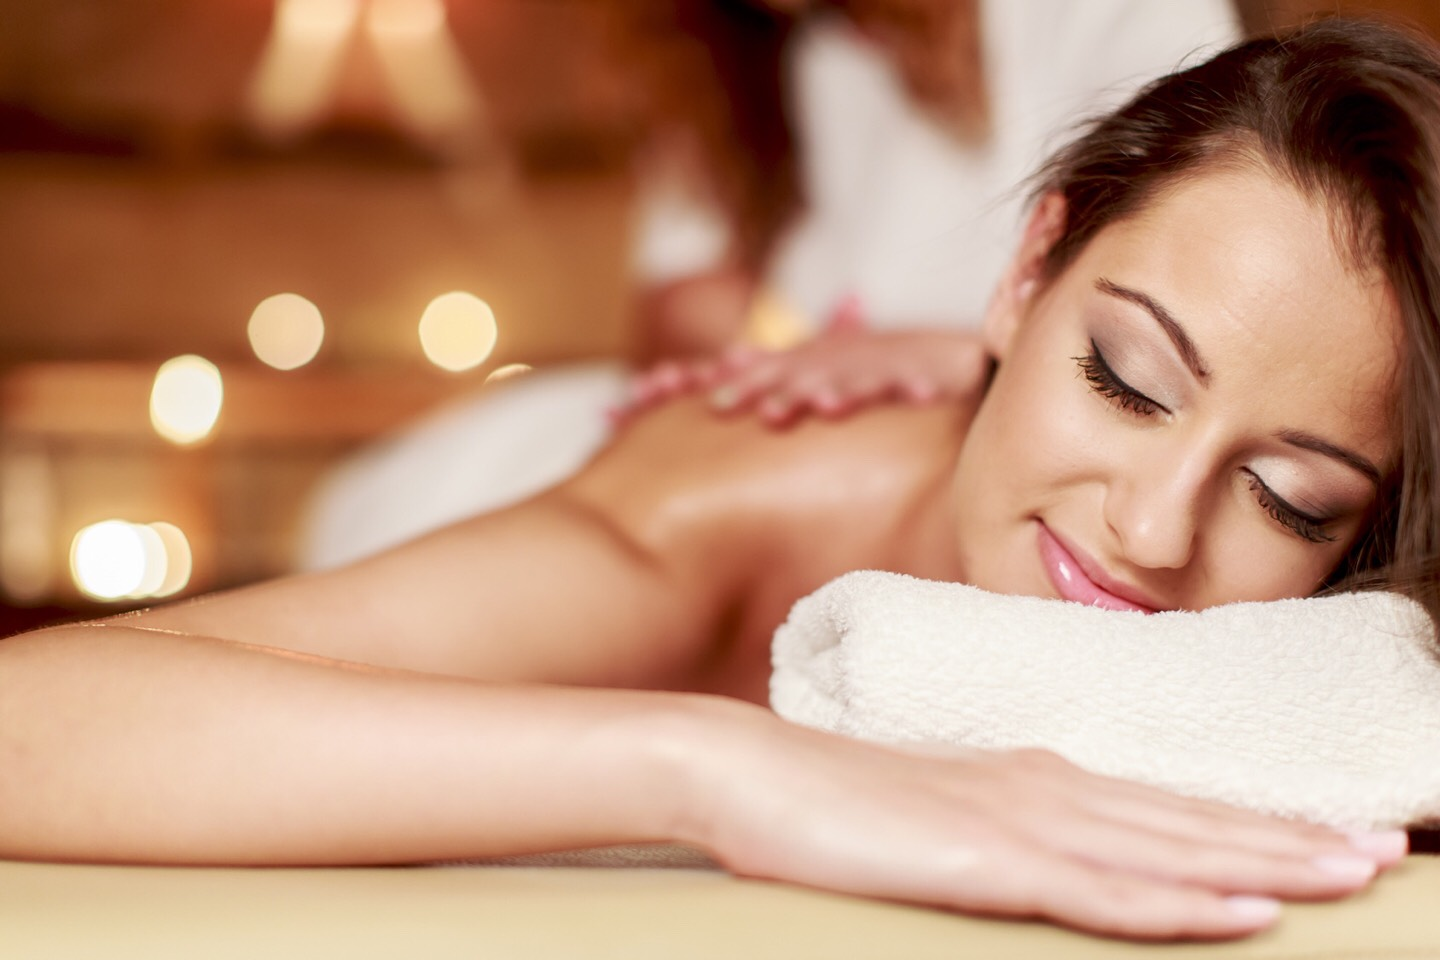 Massages may be viewed as a treat, but new studies indicate they may have a variety of health benefits. Massage as medicine? That's one prescription we'd all like. The benefits of massage go beyond feelings of relaxation and wellness that people may recognise.